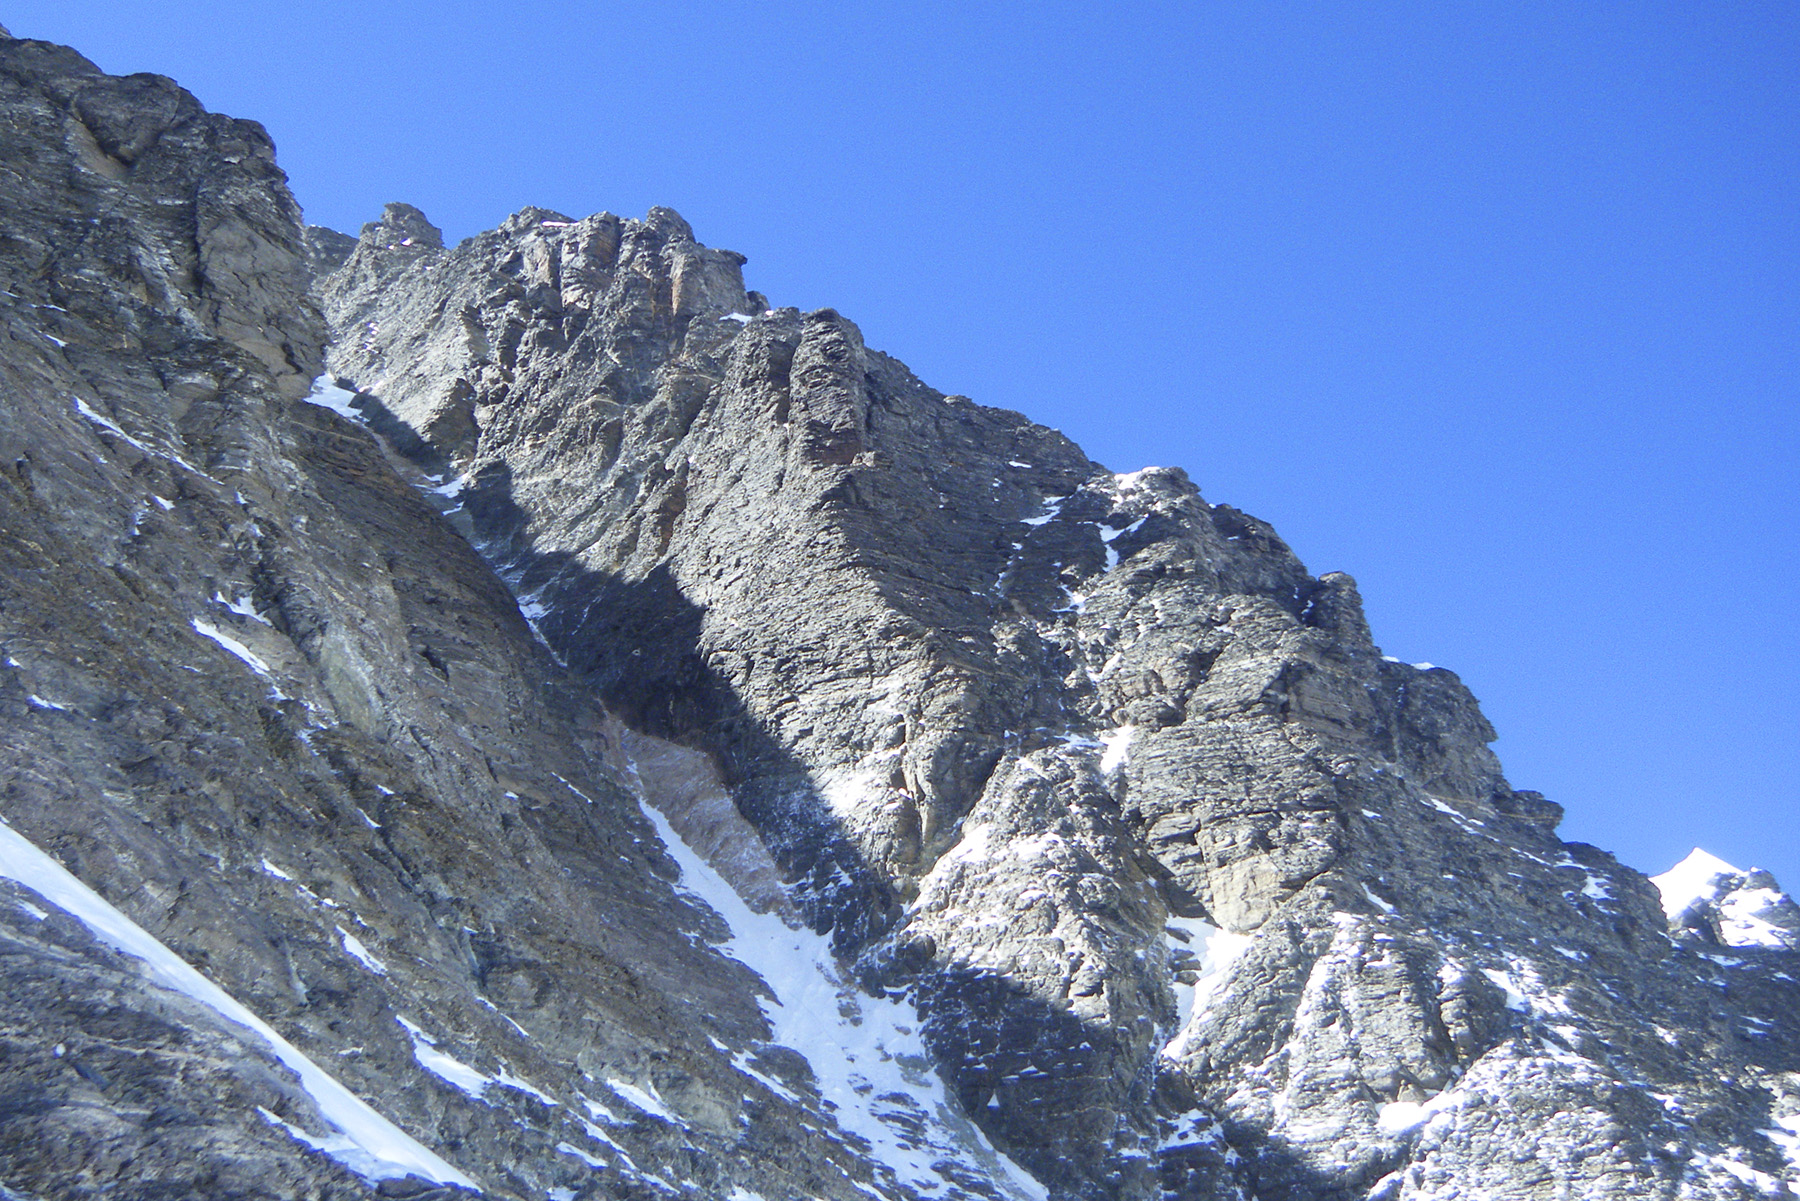 The last, delicate, slabby terrain leading into the west face couloir.